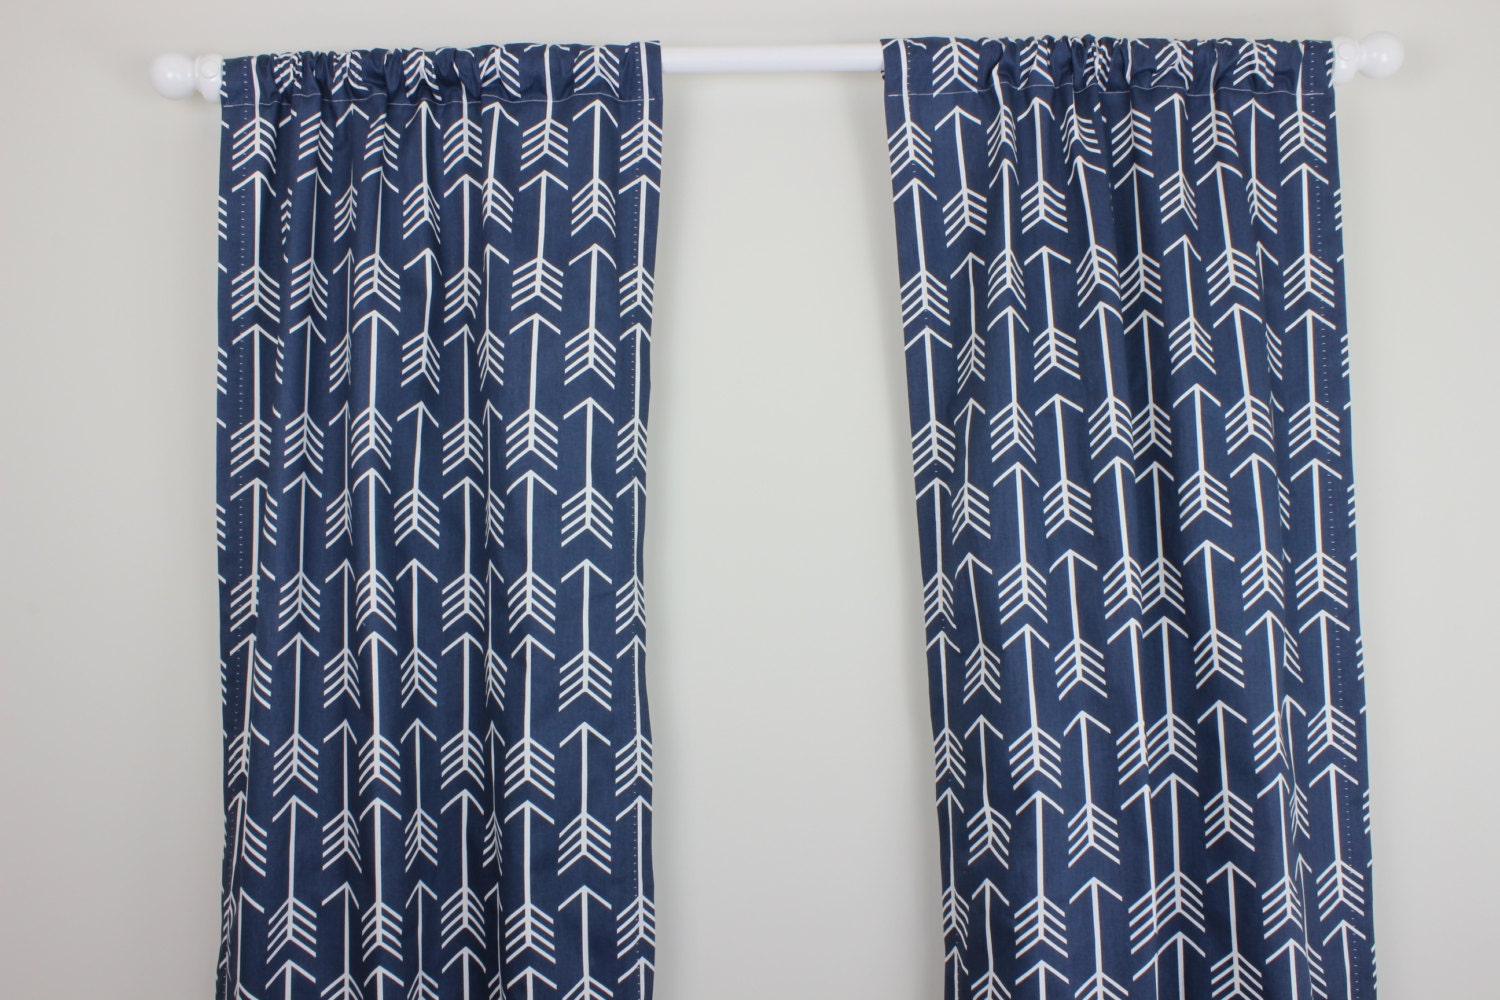 lining curtain curtains inch coordinating width and navy nautical carousel drapes length large horizontal panels drape stripe panel standard